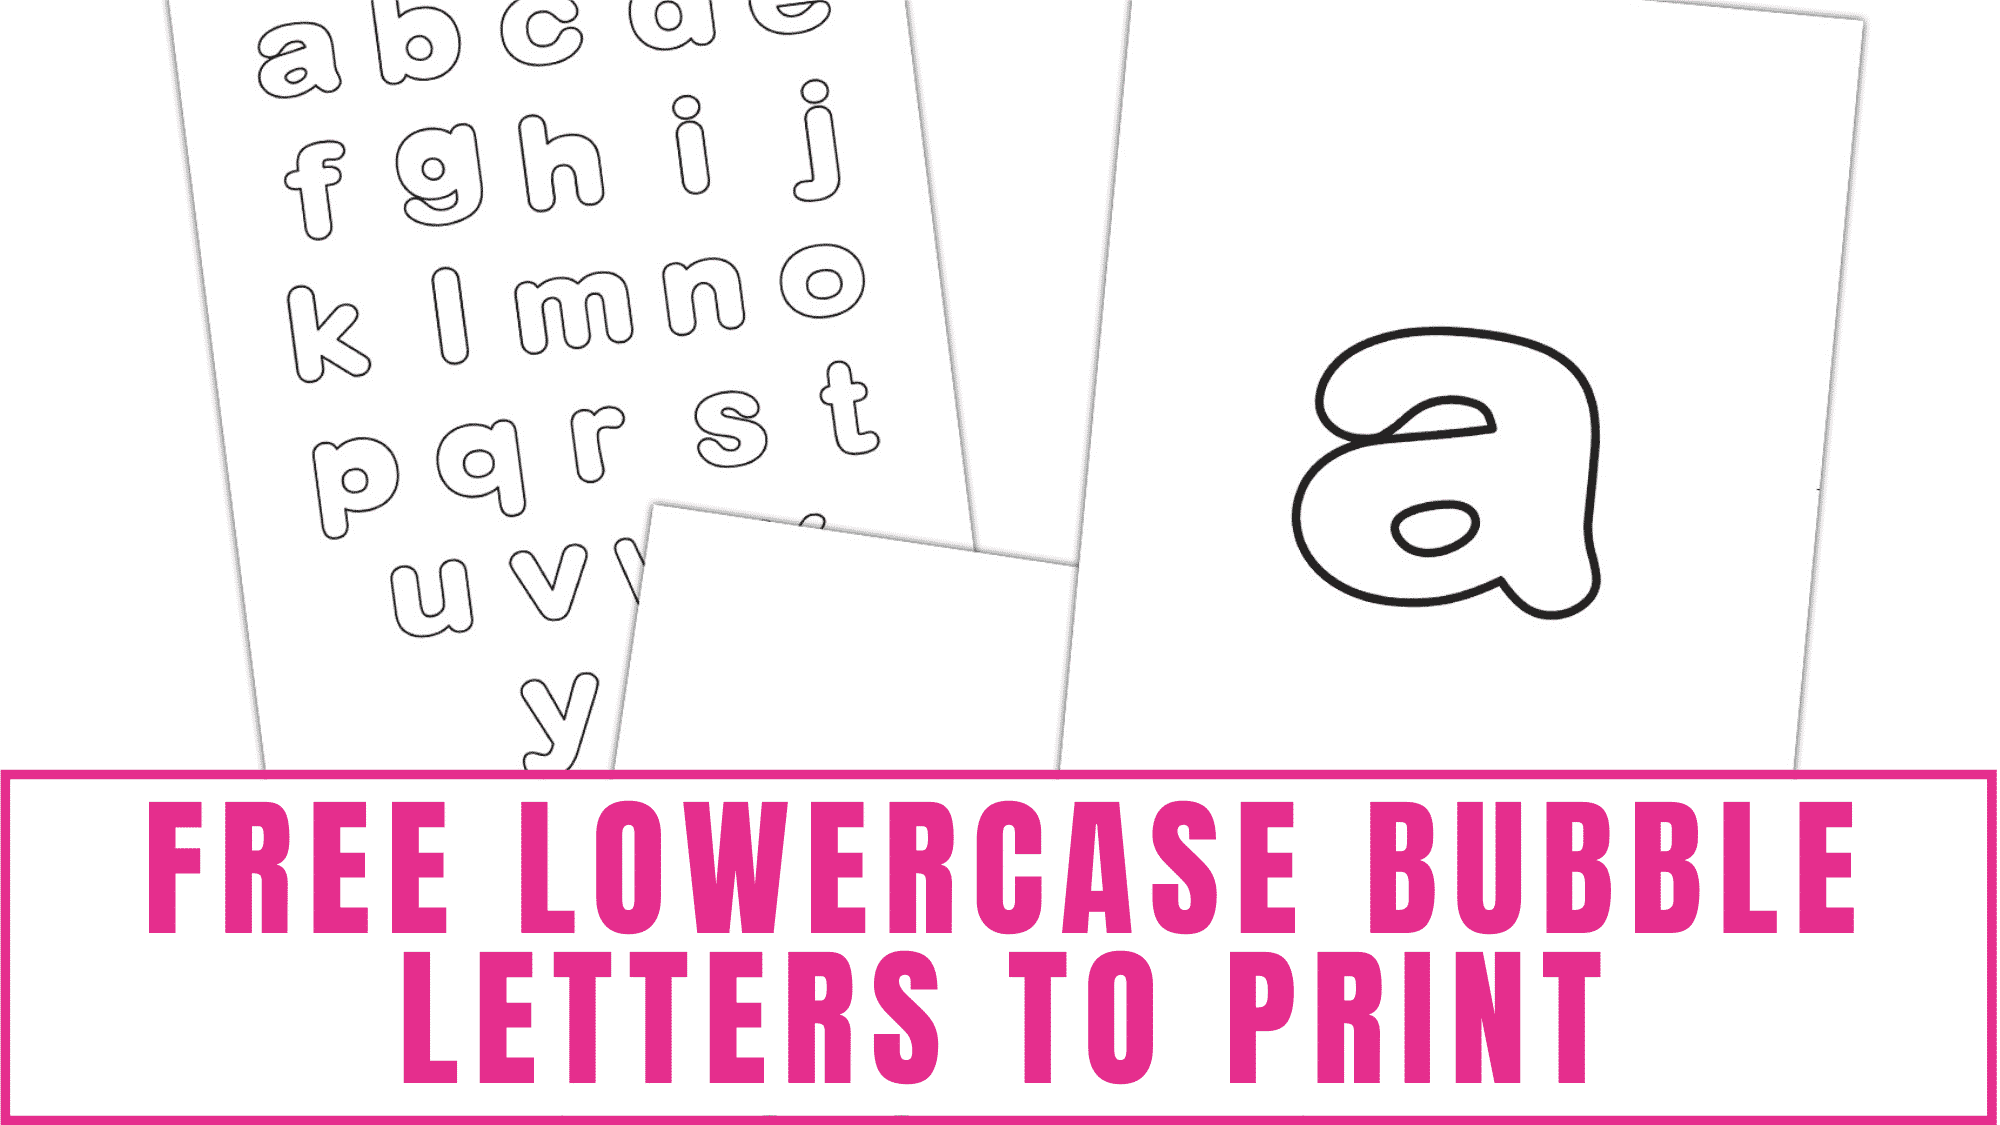 Helping your preschooler or kindergartener learn recognition of the alphabet? Download these free lowercase bubble letters to print and turn them into letter flashcards or make a letter game out of them.